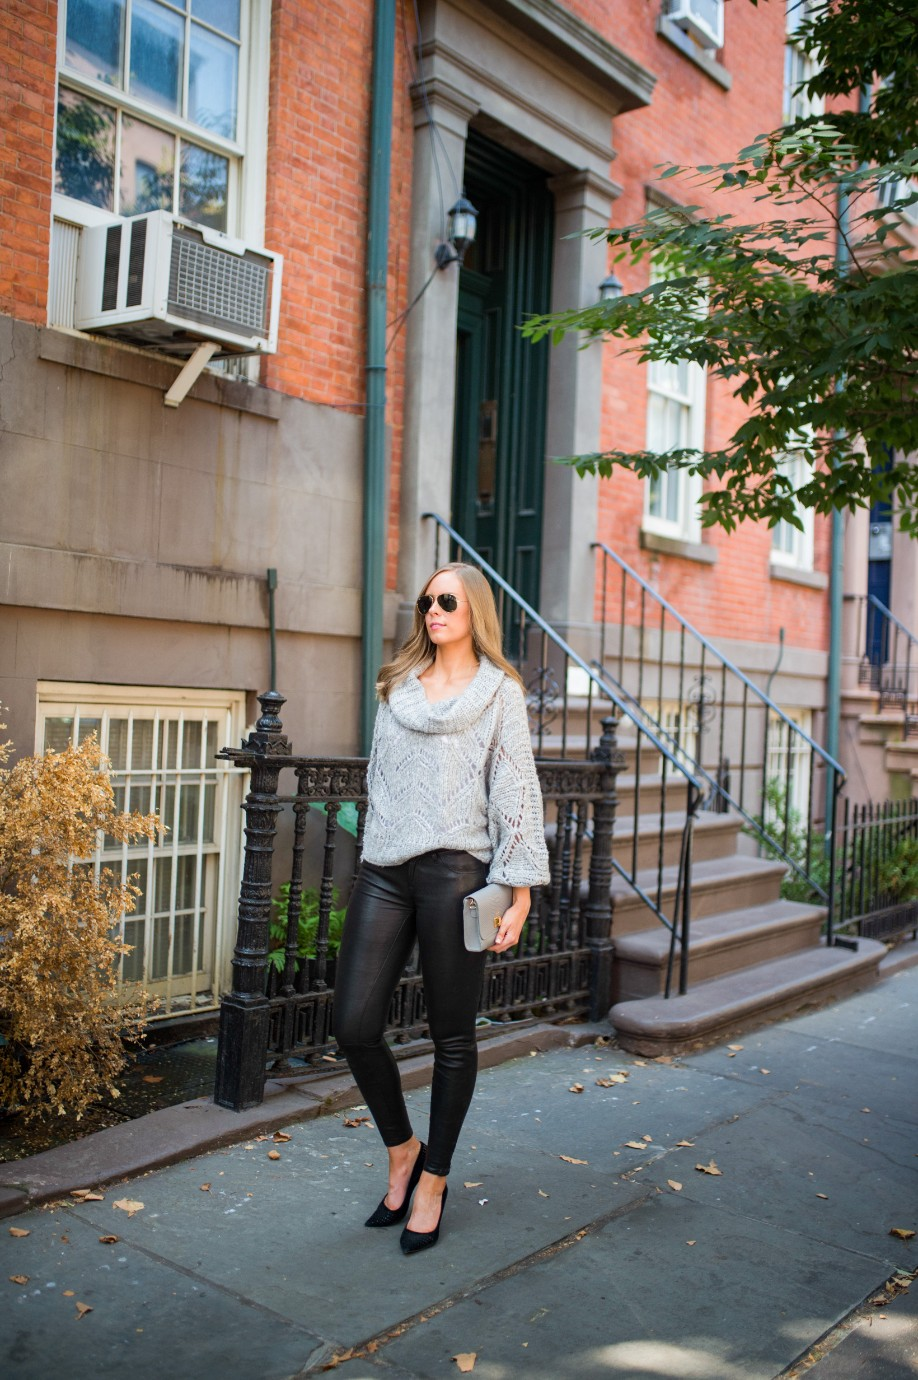 leather pants outfit and grey knit sweater fashion blogger outfit ideas fall winter style lauren slade style elixir